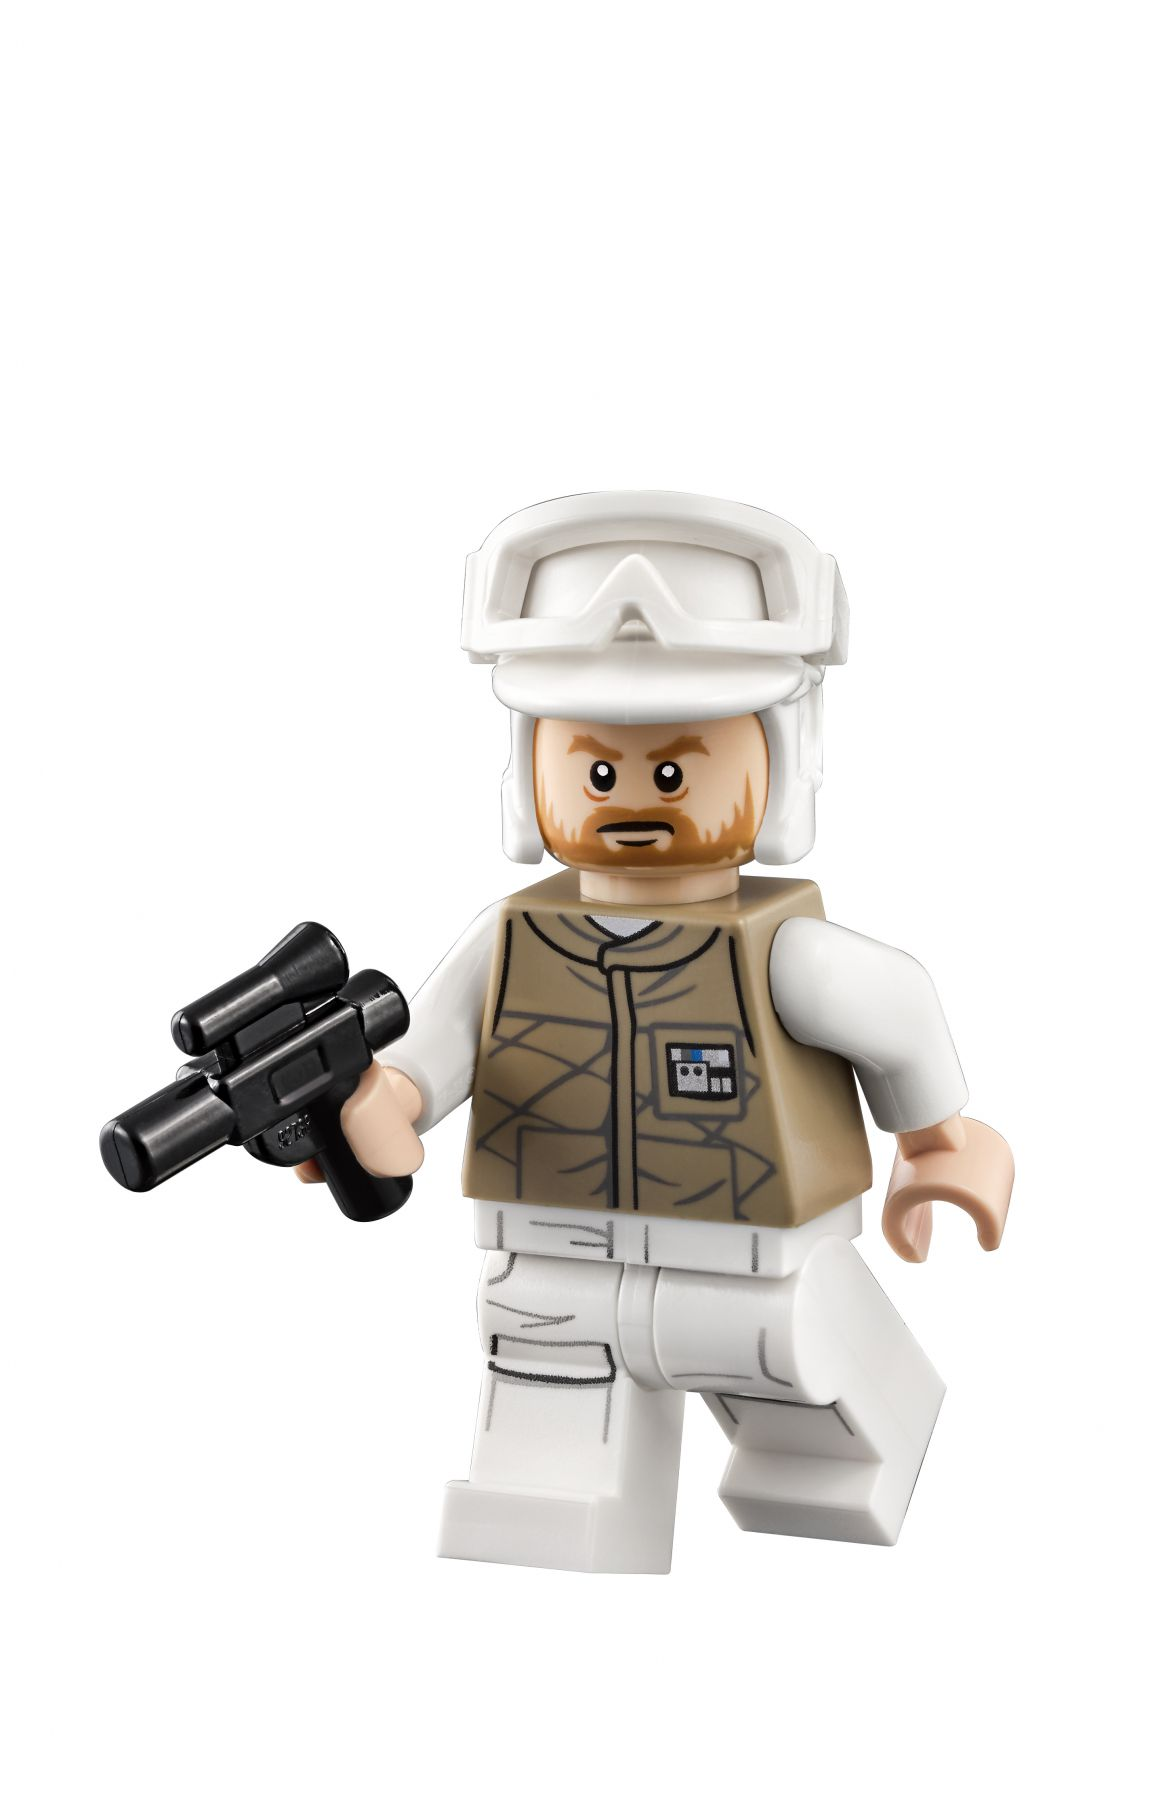 LEGO Star Wars 75098 Angriff auf Hoth™ LEGO-75098-Assault-on-Hoth-Minifigure_03.jpg